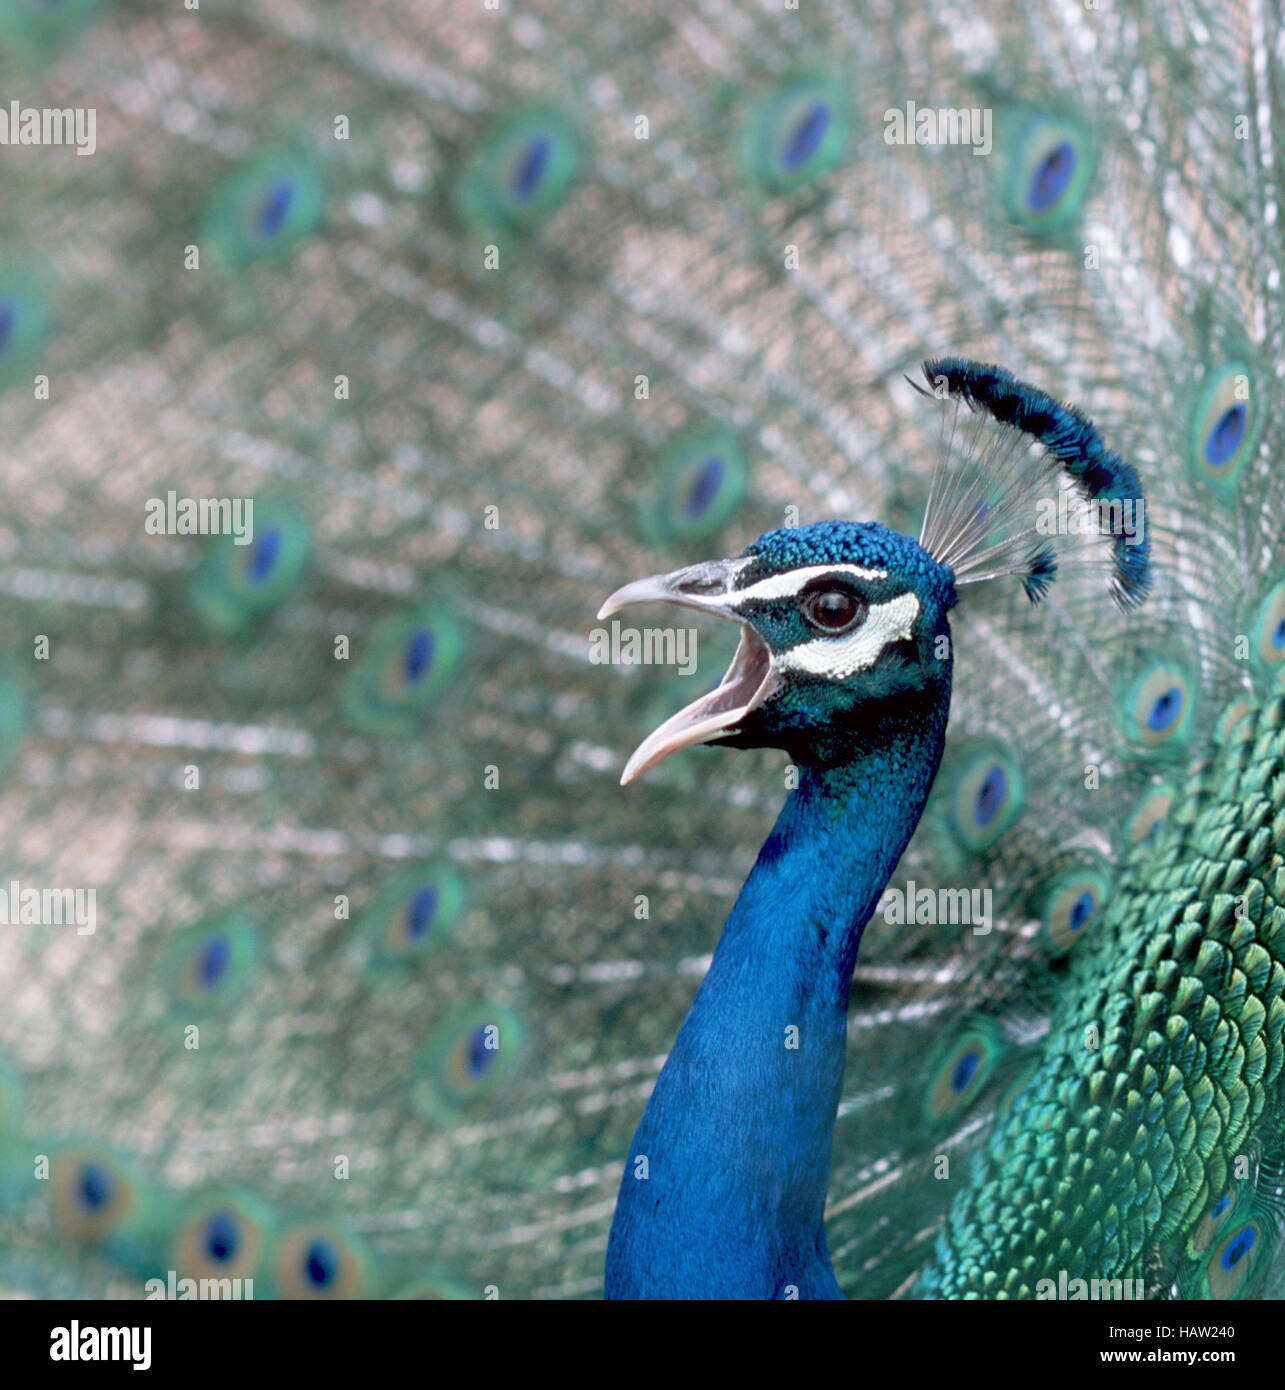 Peacock screeches - Stock Image